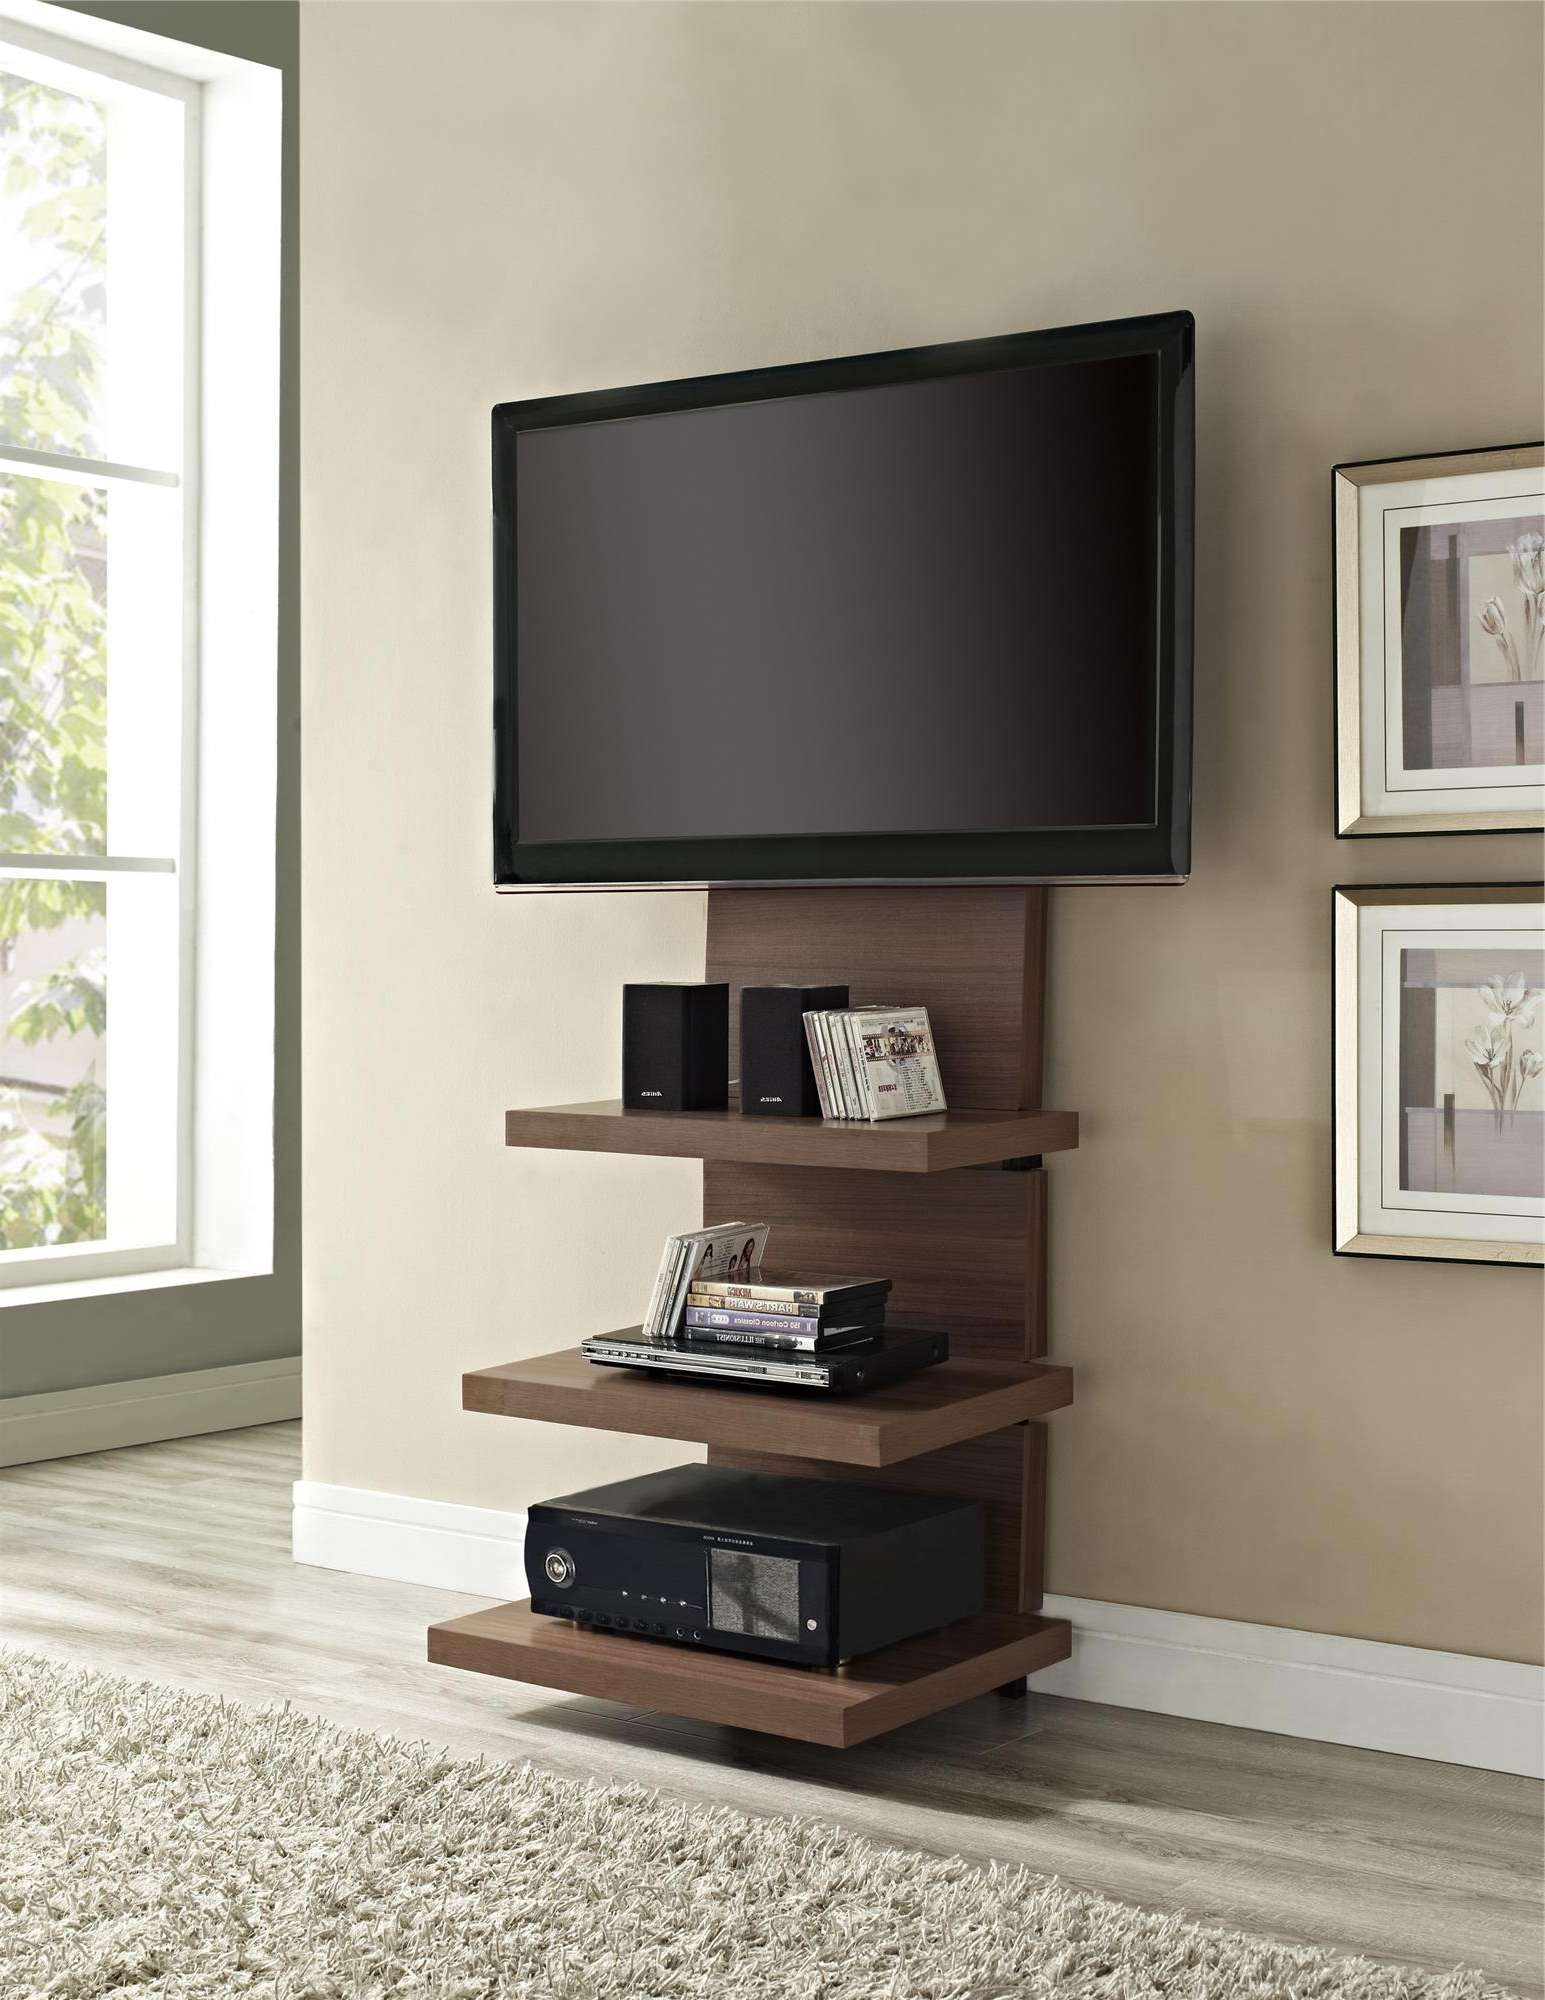 Tall Wood Wall Mounted Tv Stand With Shelves And Mount For Flat In Wall Mounted Tv Stands For Flat Screens (View 6 of 15)